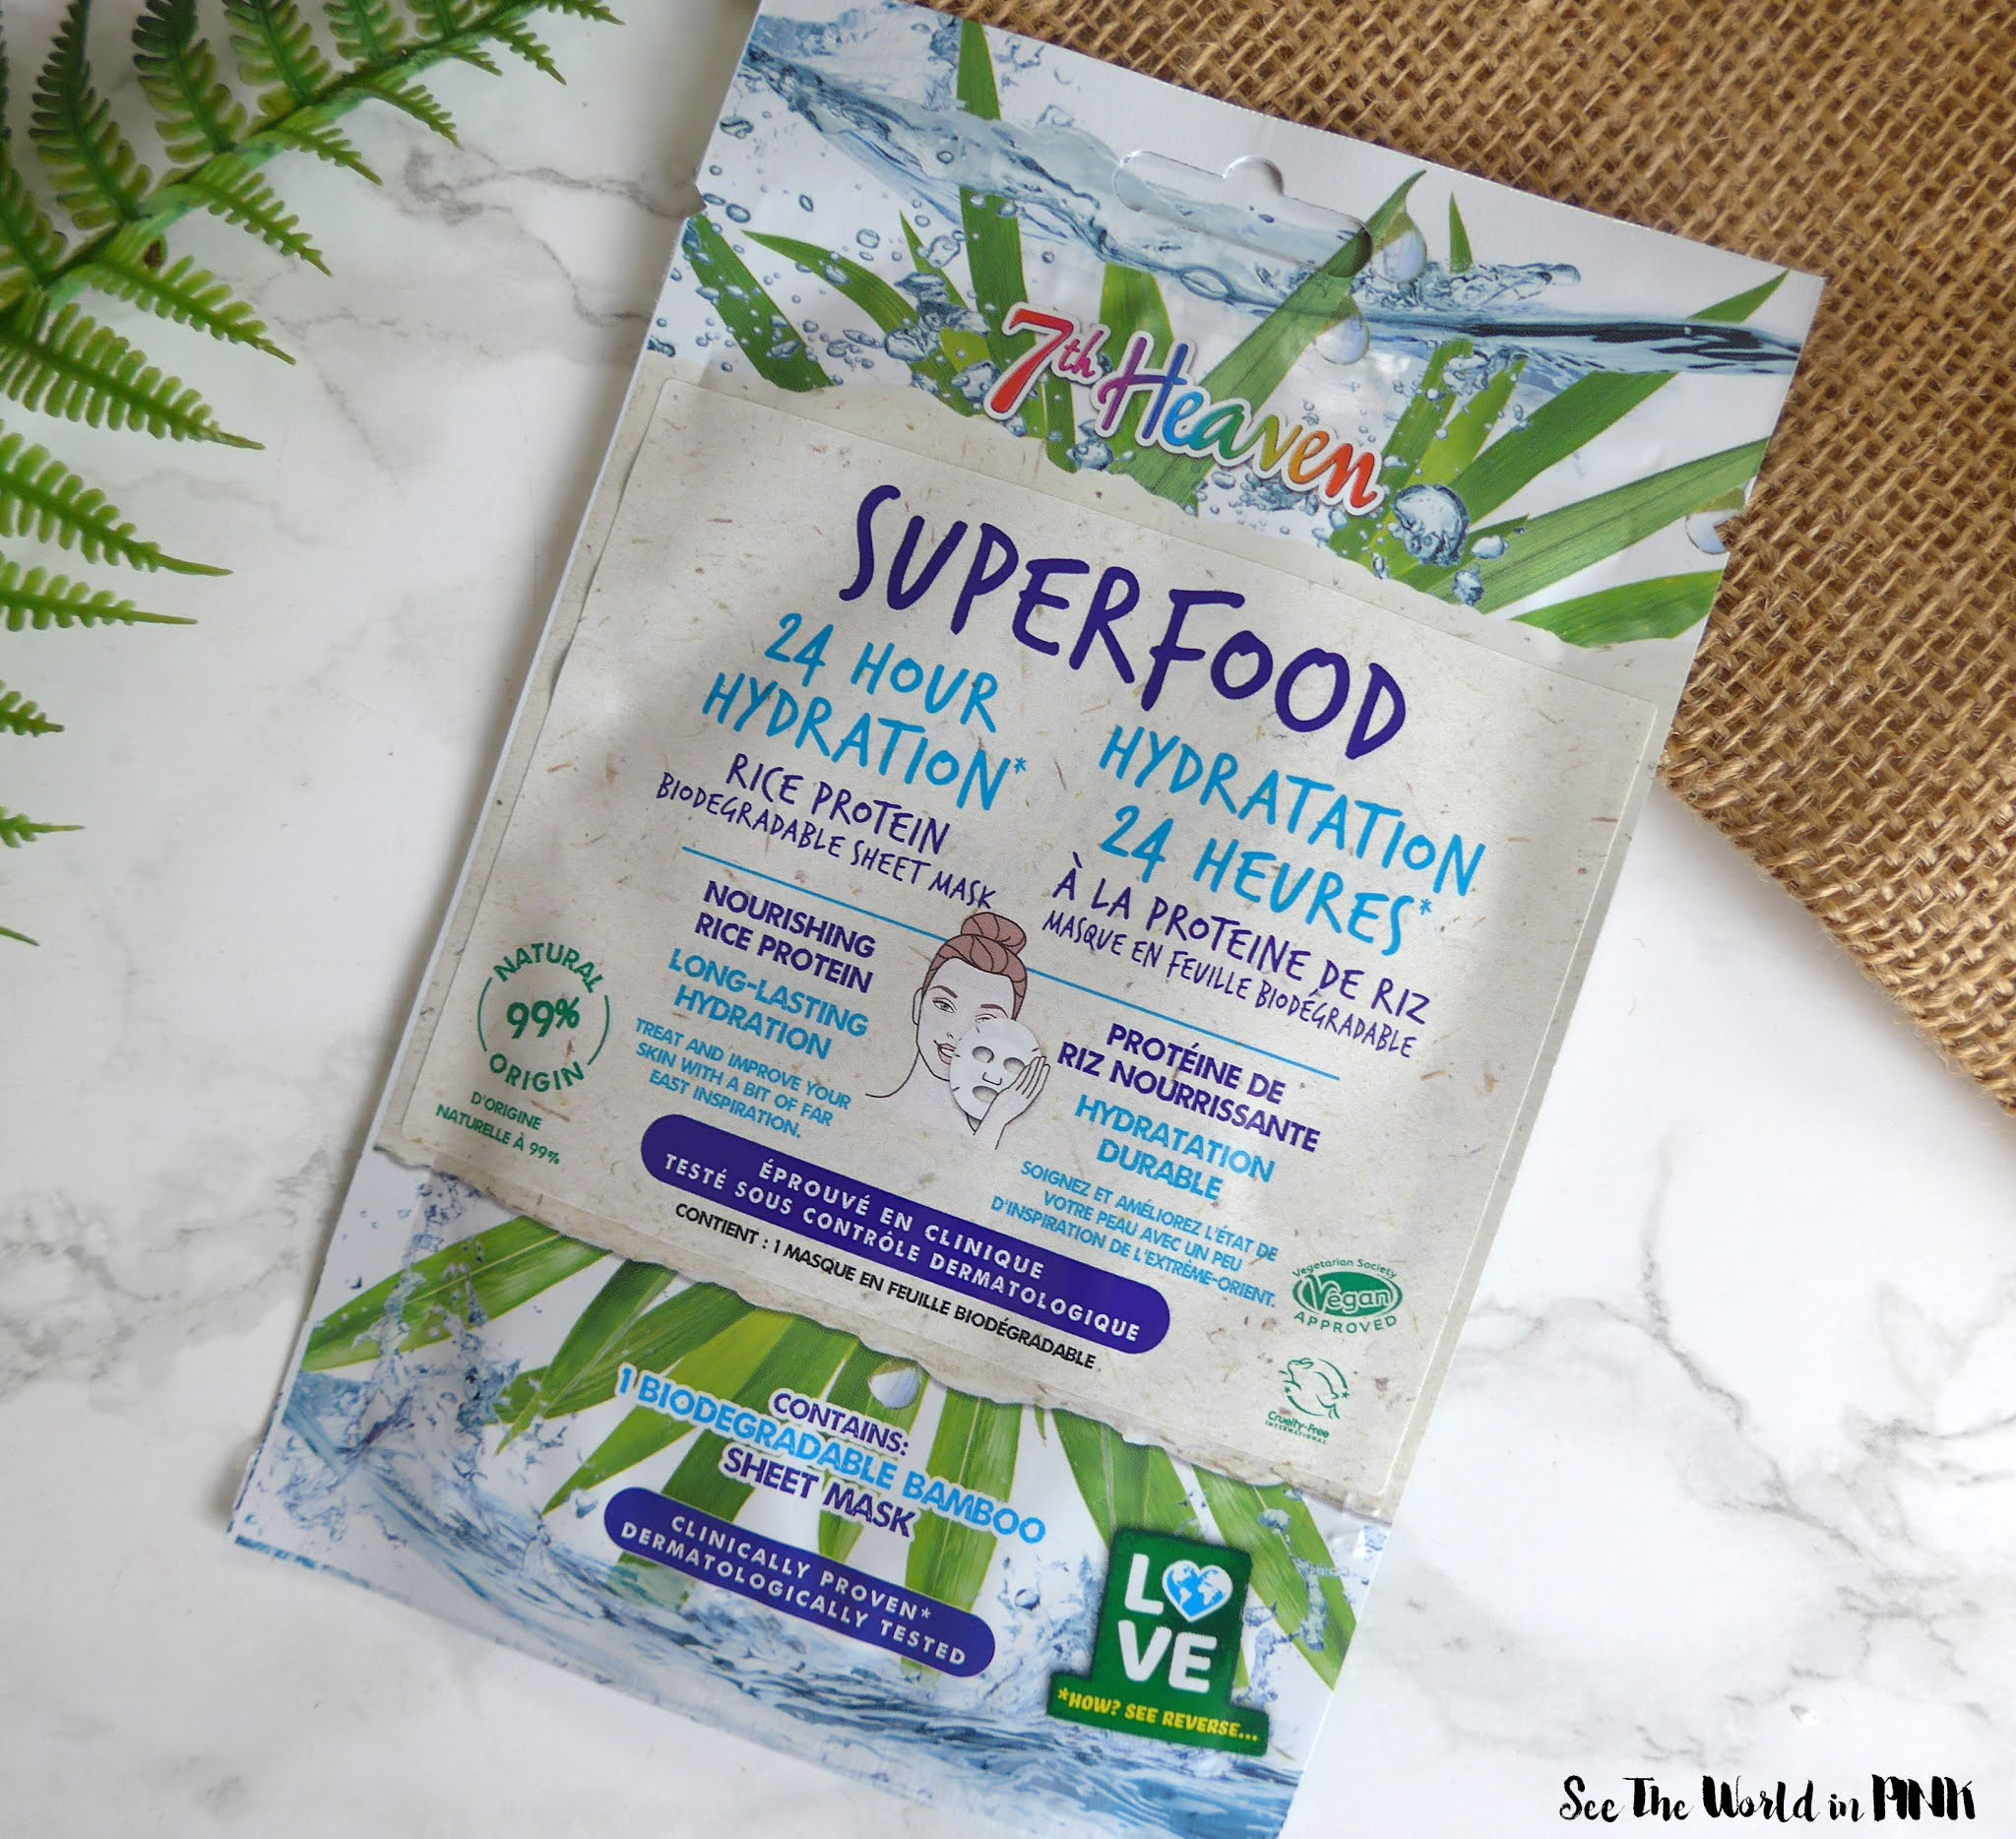 7th Heaven Superfood Avocado, Rice Protein, and Turmeric Bamboo Biodegradable Sheet Masks